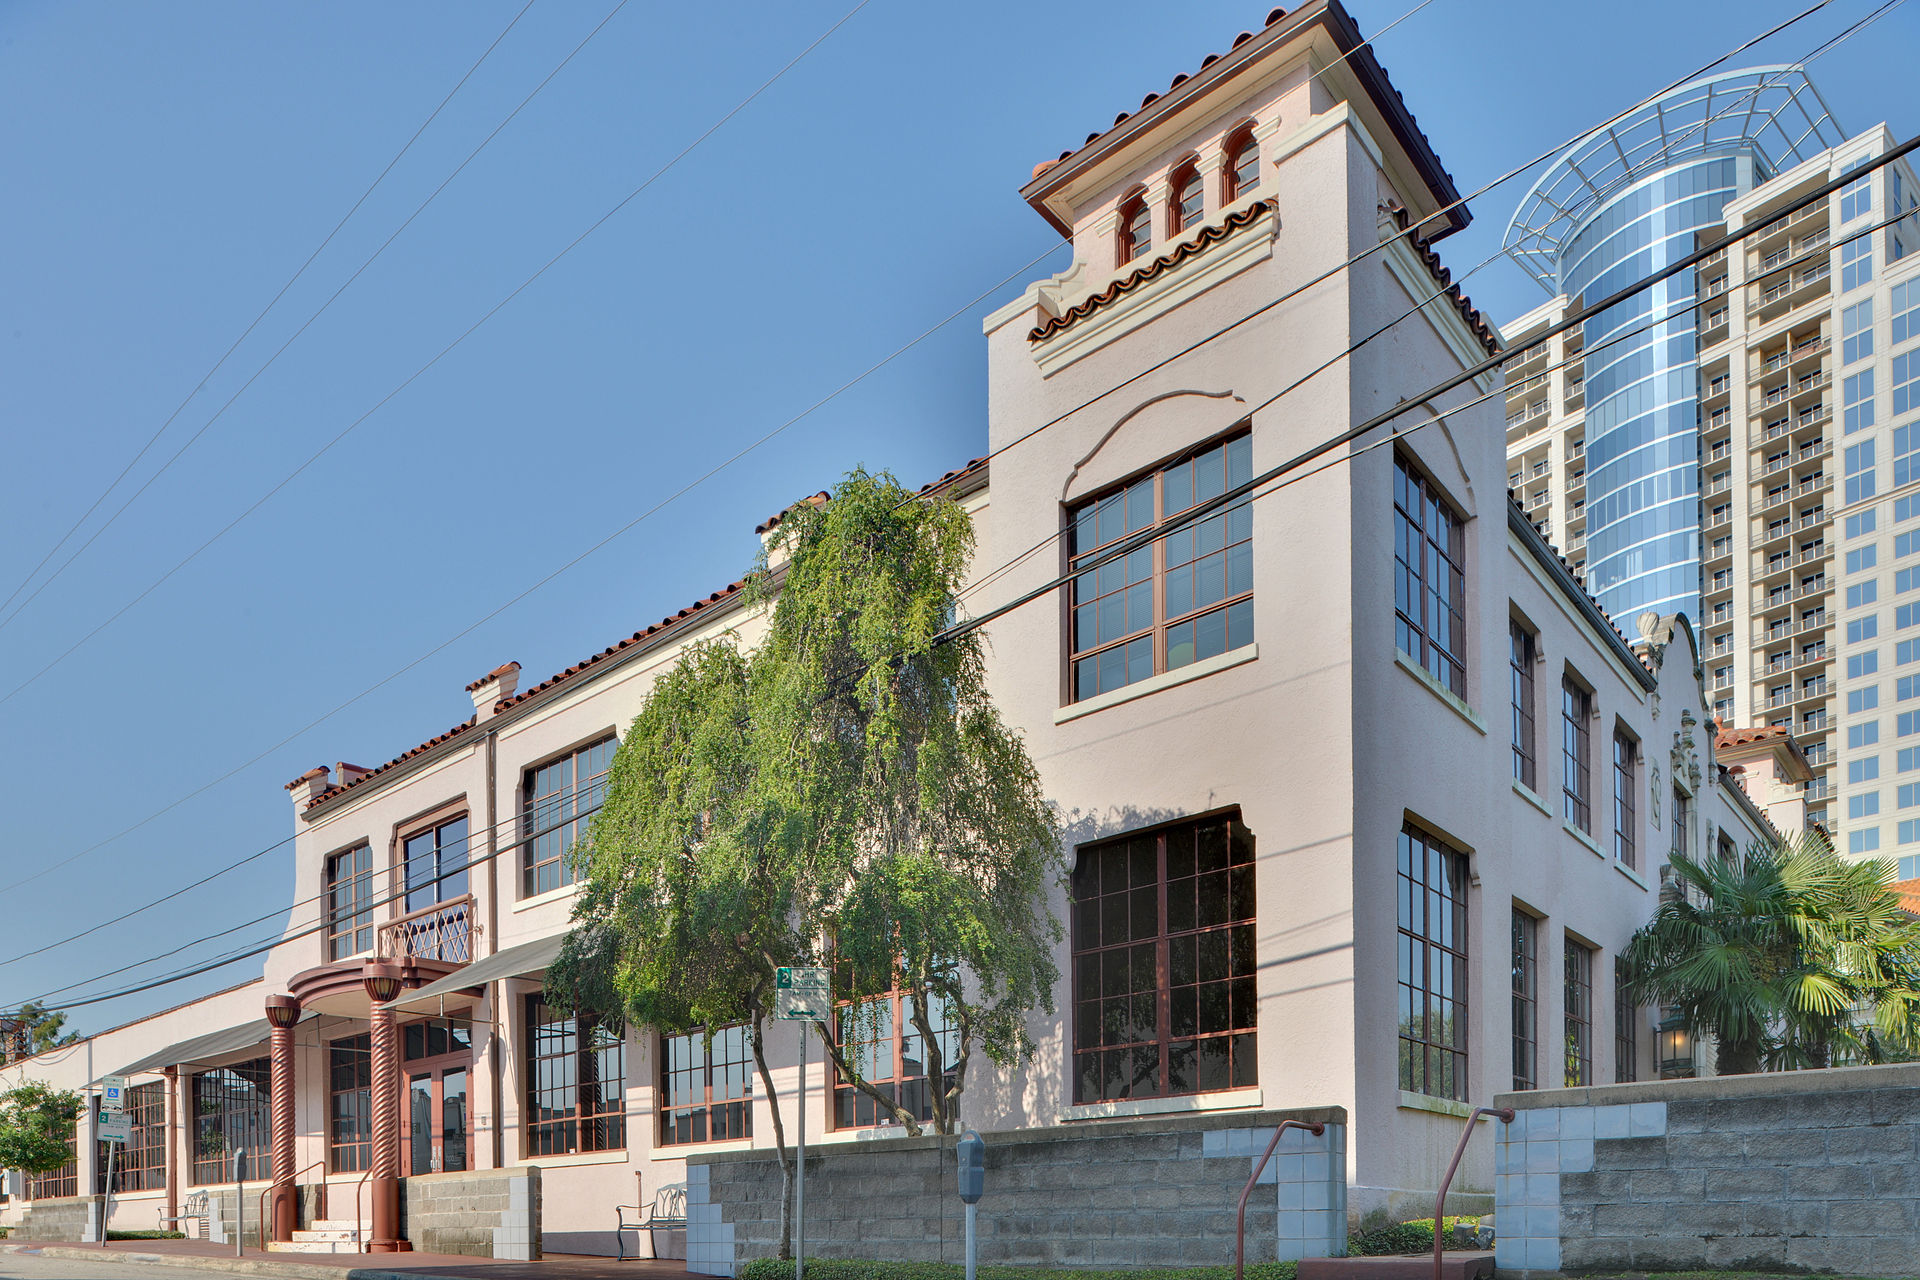 The former Star Engraving Building was constructed in 1930 and is now the Houston Center for the Arts.